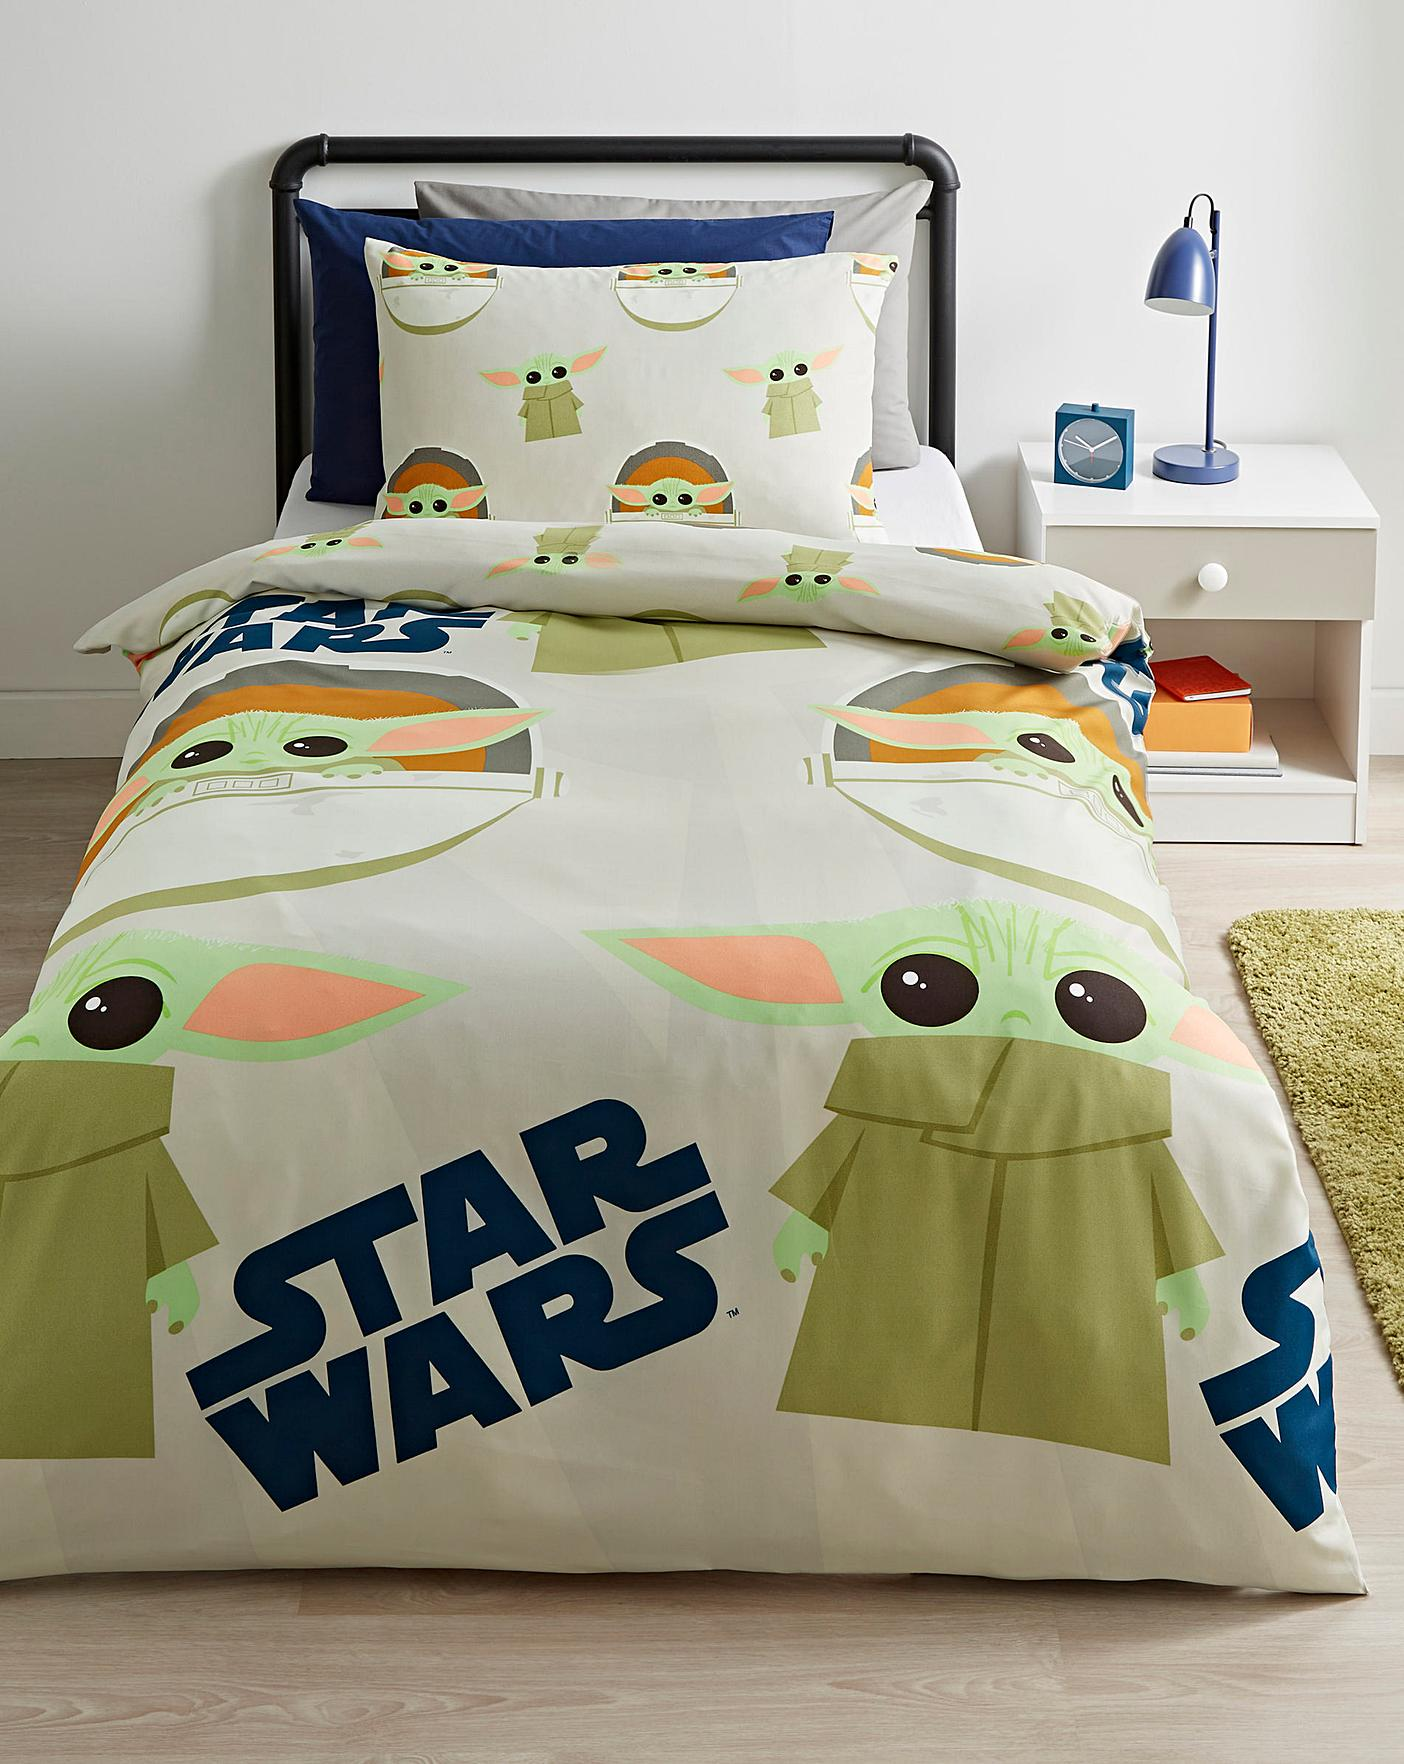 Star Wars Mandalorian Duvet Set J D Williams